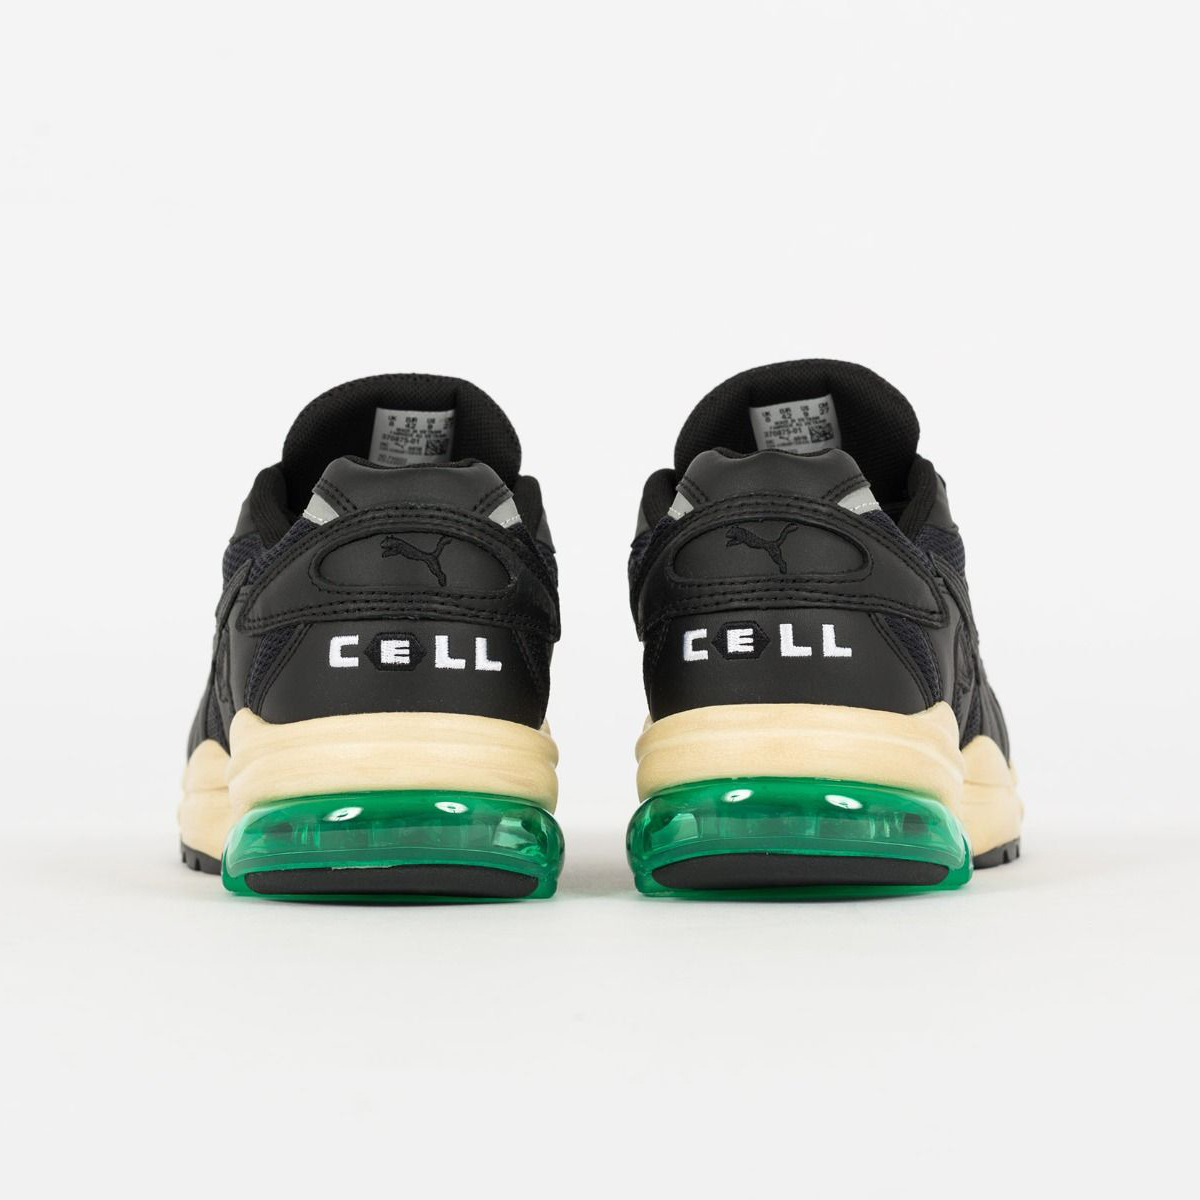 RHUDE x Puma Cell Alien (Puma Black/ Navigate/ Tan/ Green) Men 8-13